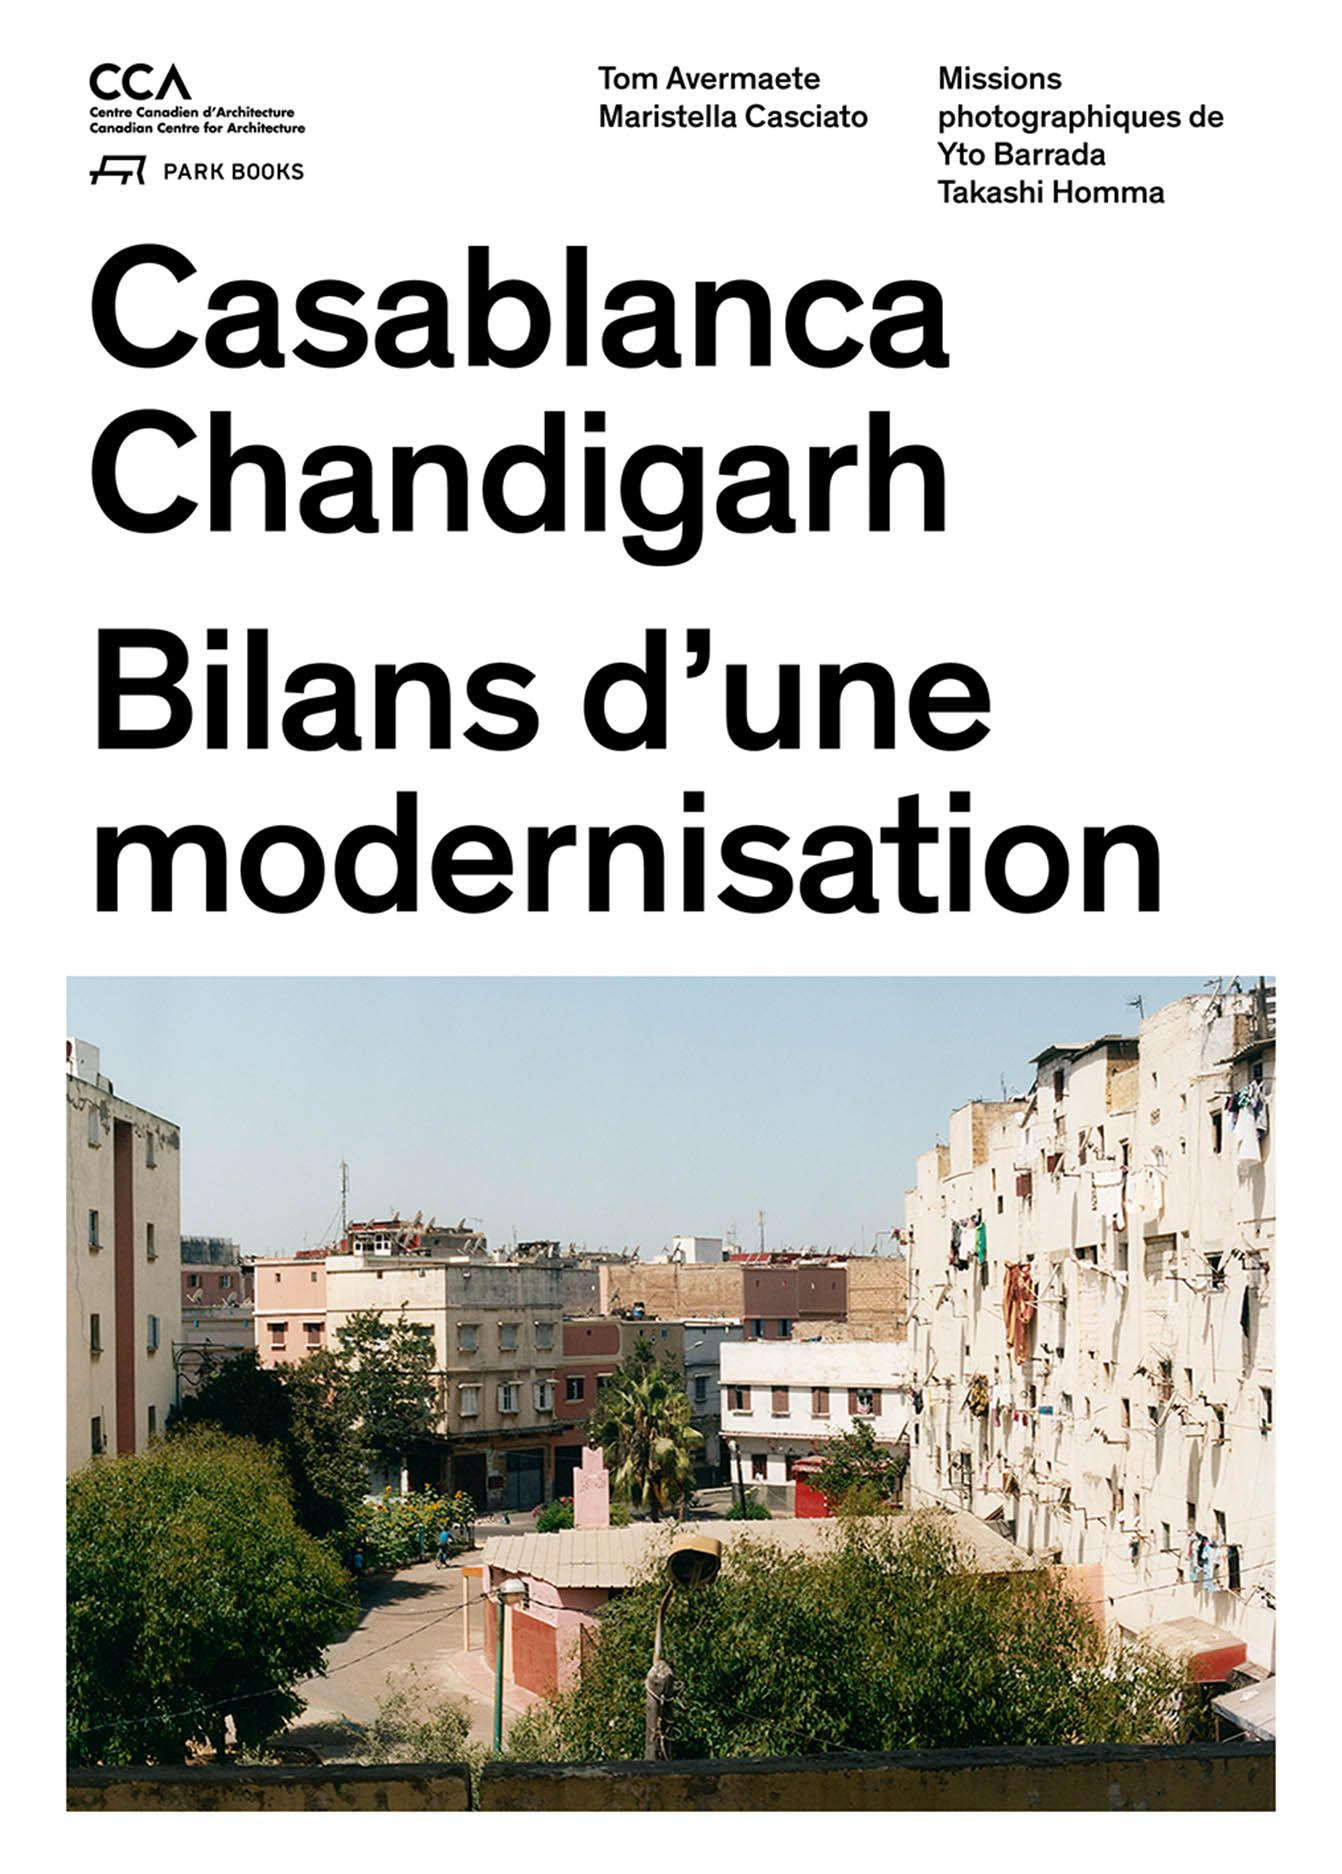 Casablanca Chandigarh: Bilans d'une modernisation